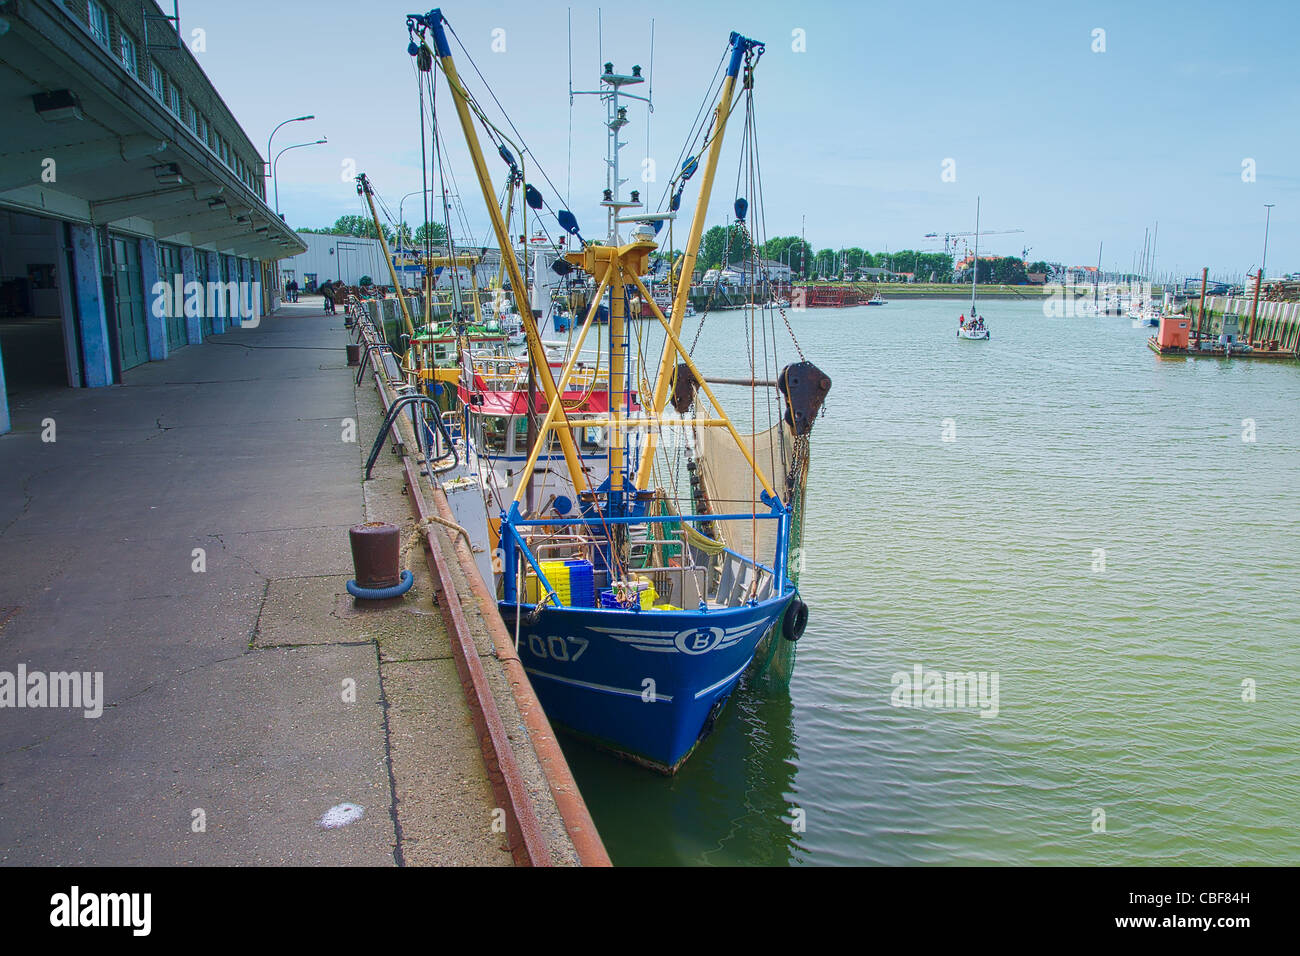 Fishing quota in North Sea forcing fishing boats out of work. - Stock Image